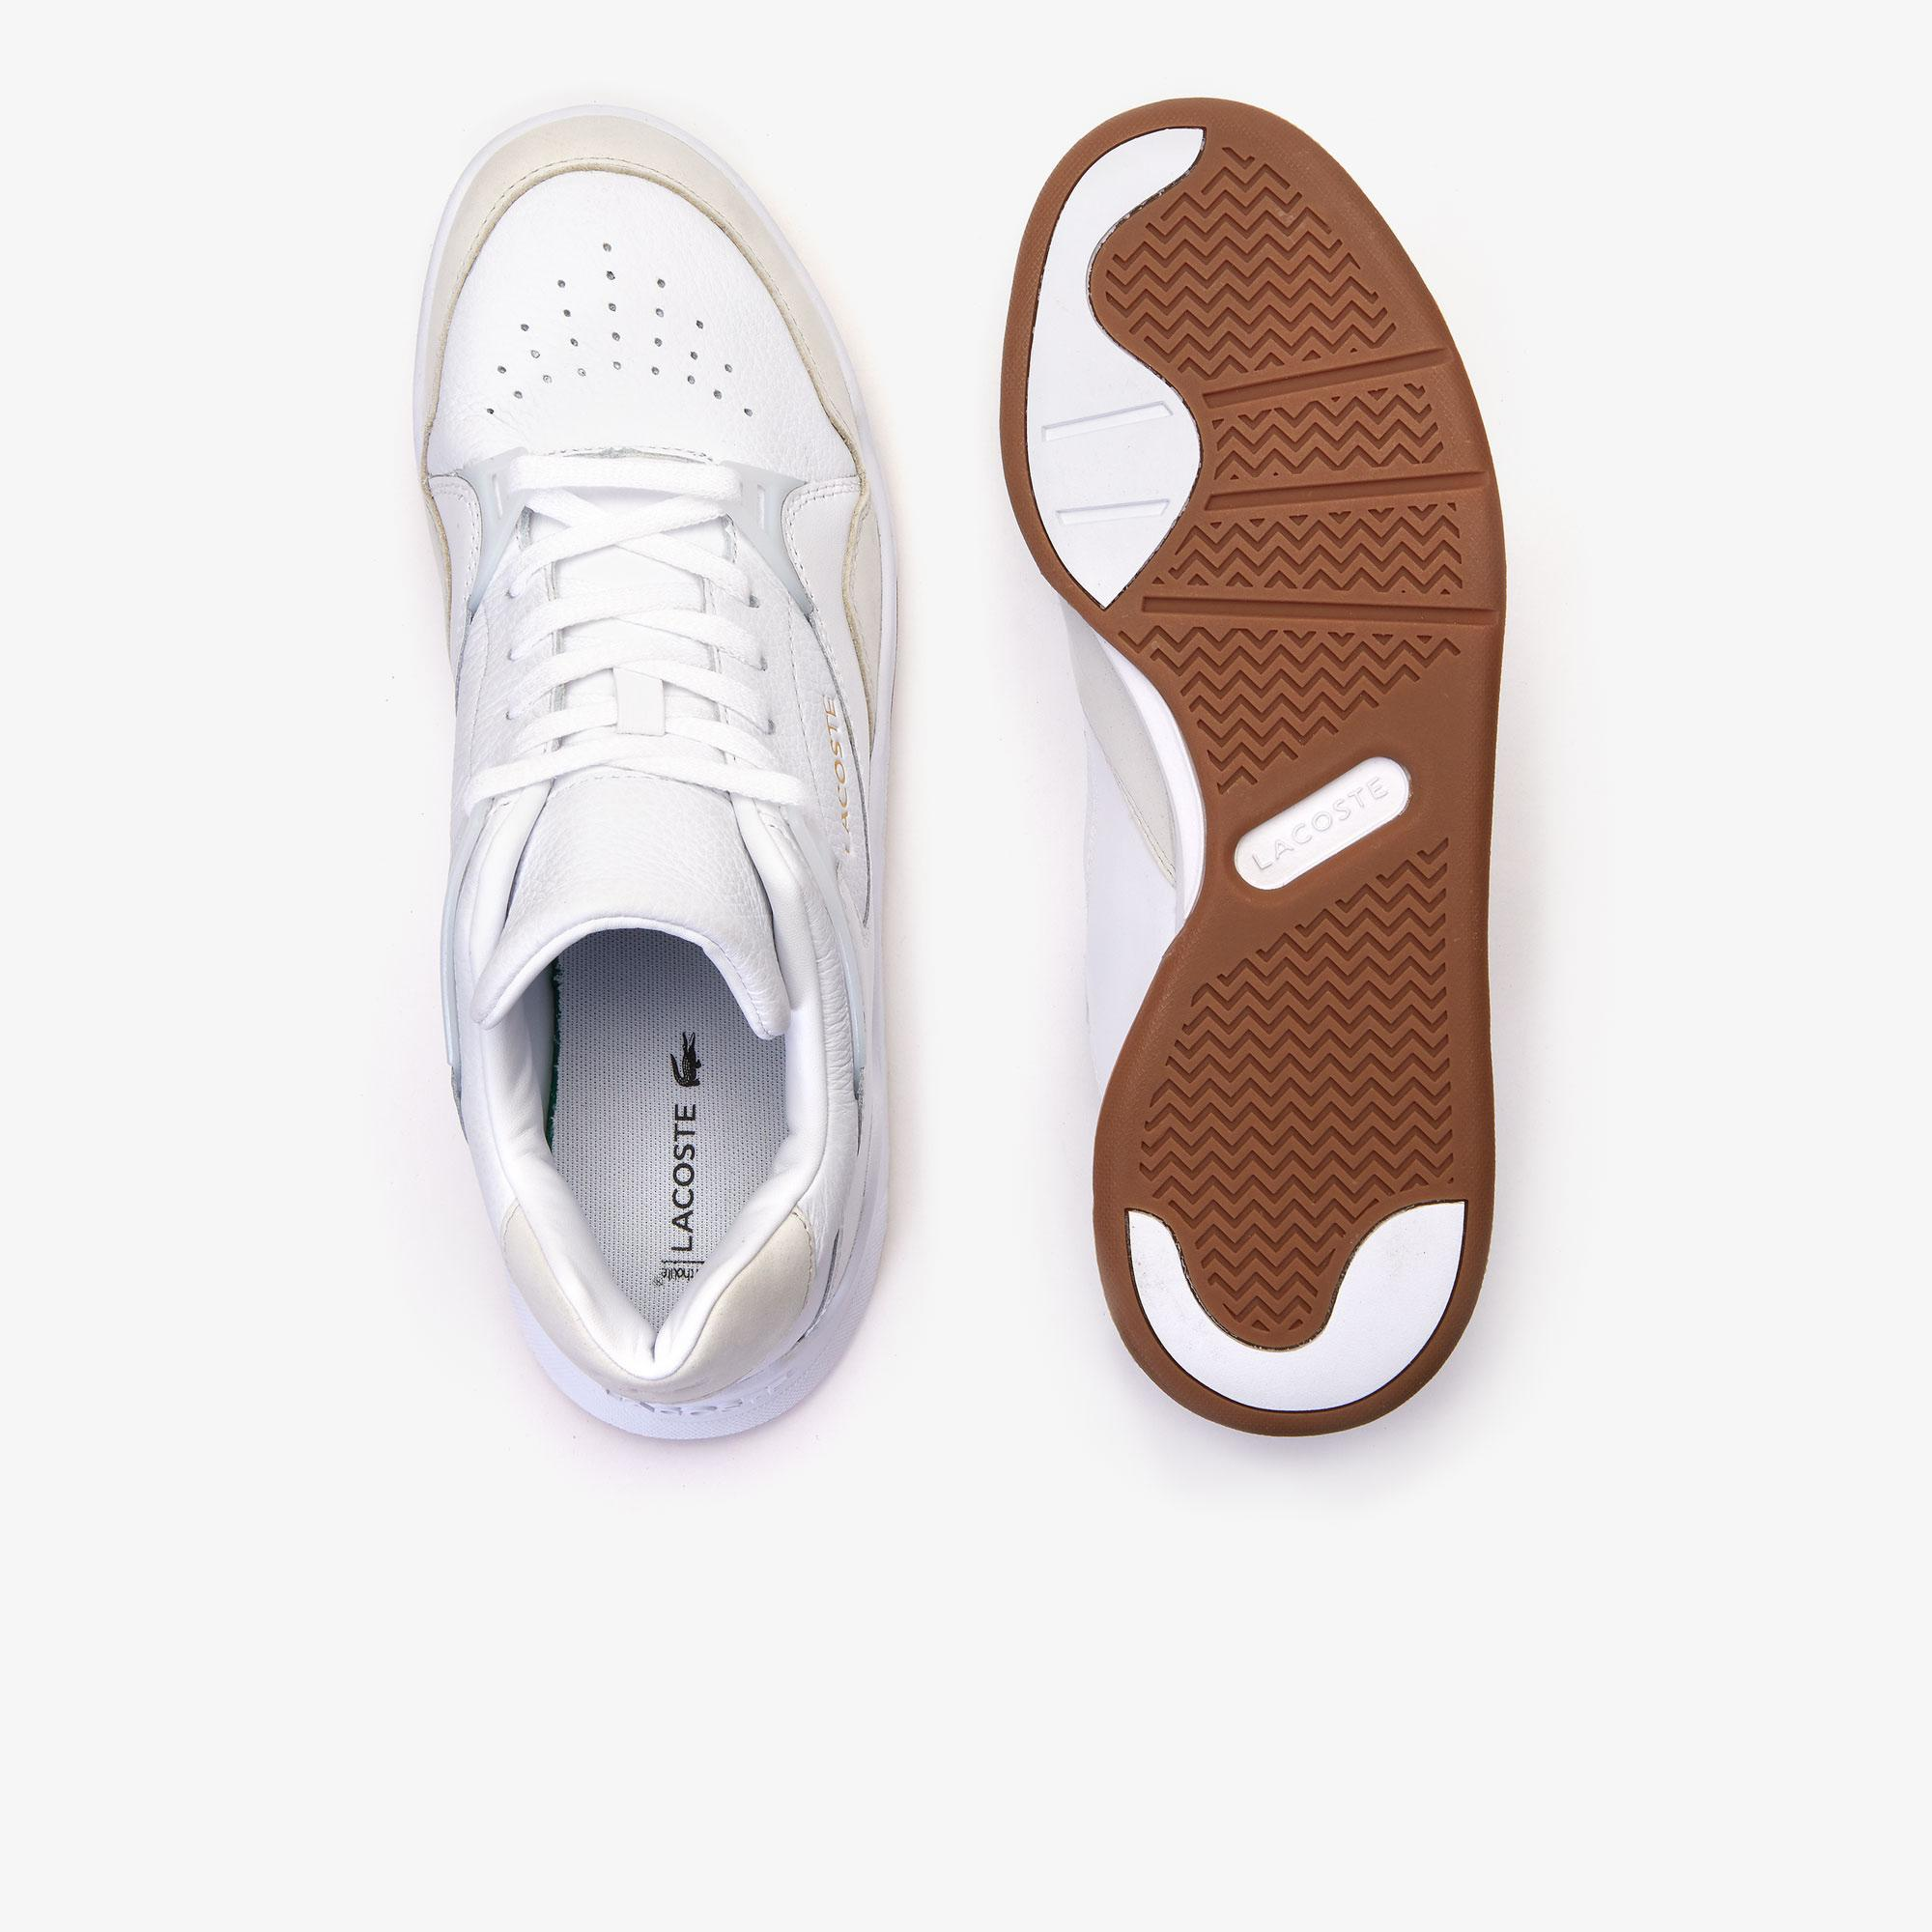 Lacoste Men's Court Slam 319 1 Sma Leather Sneakers